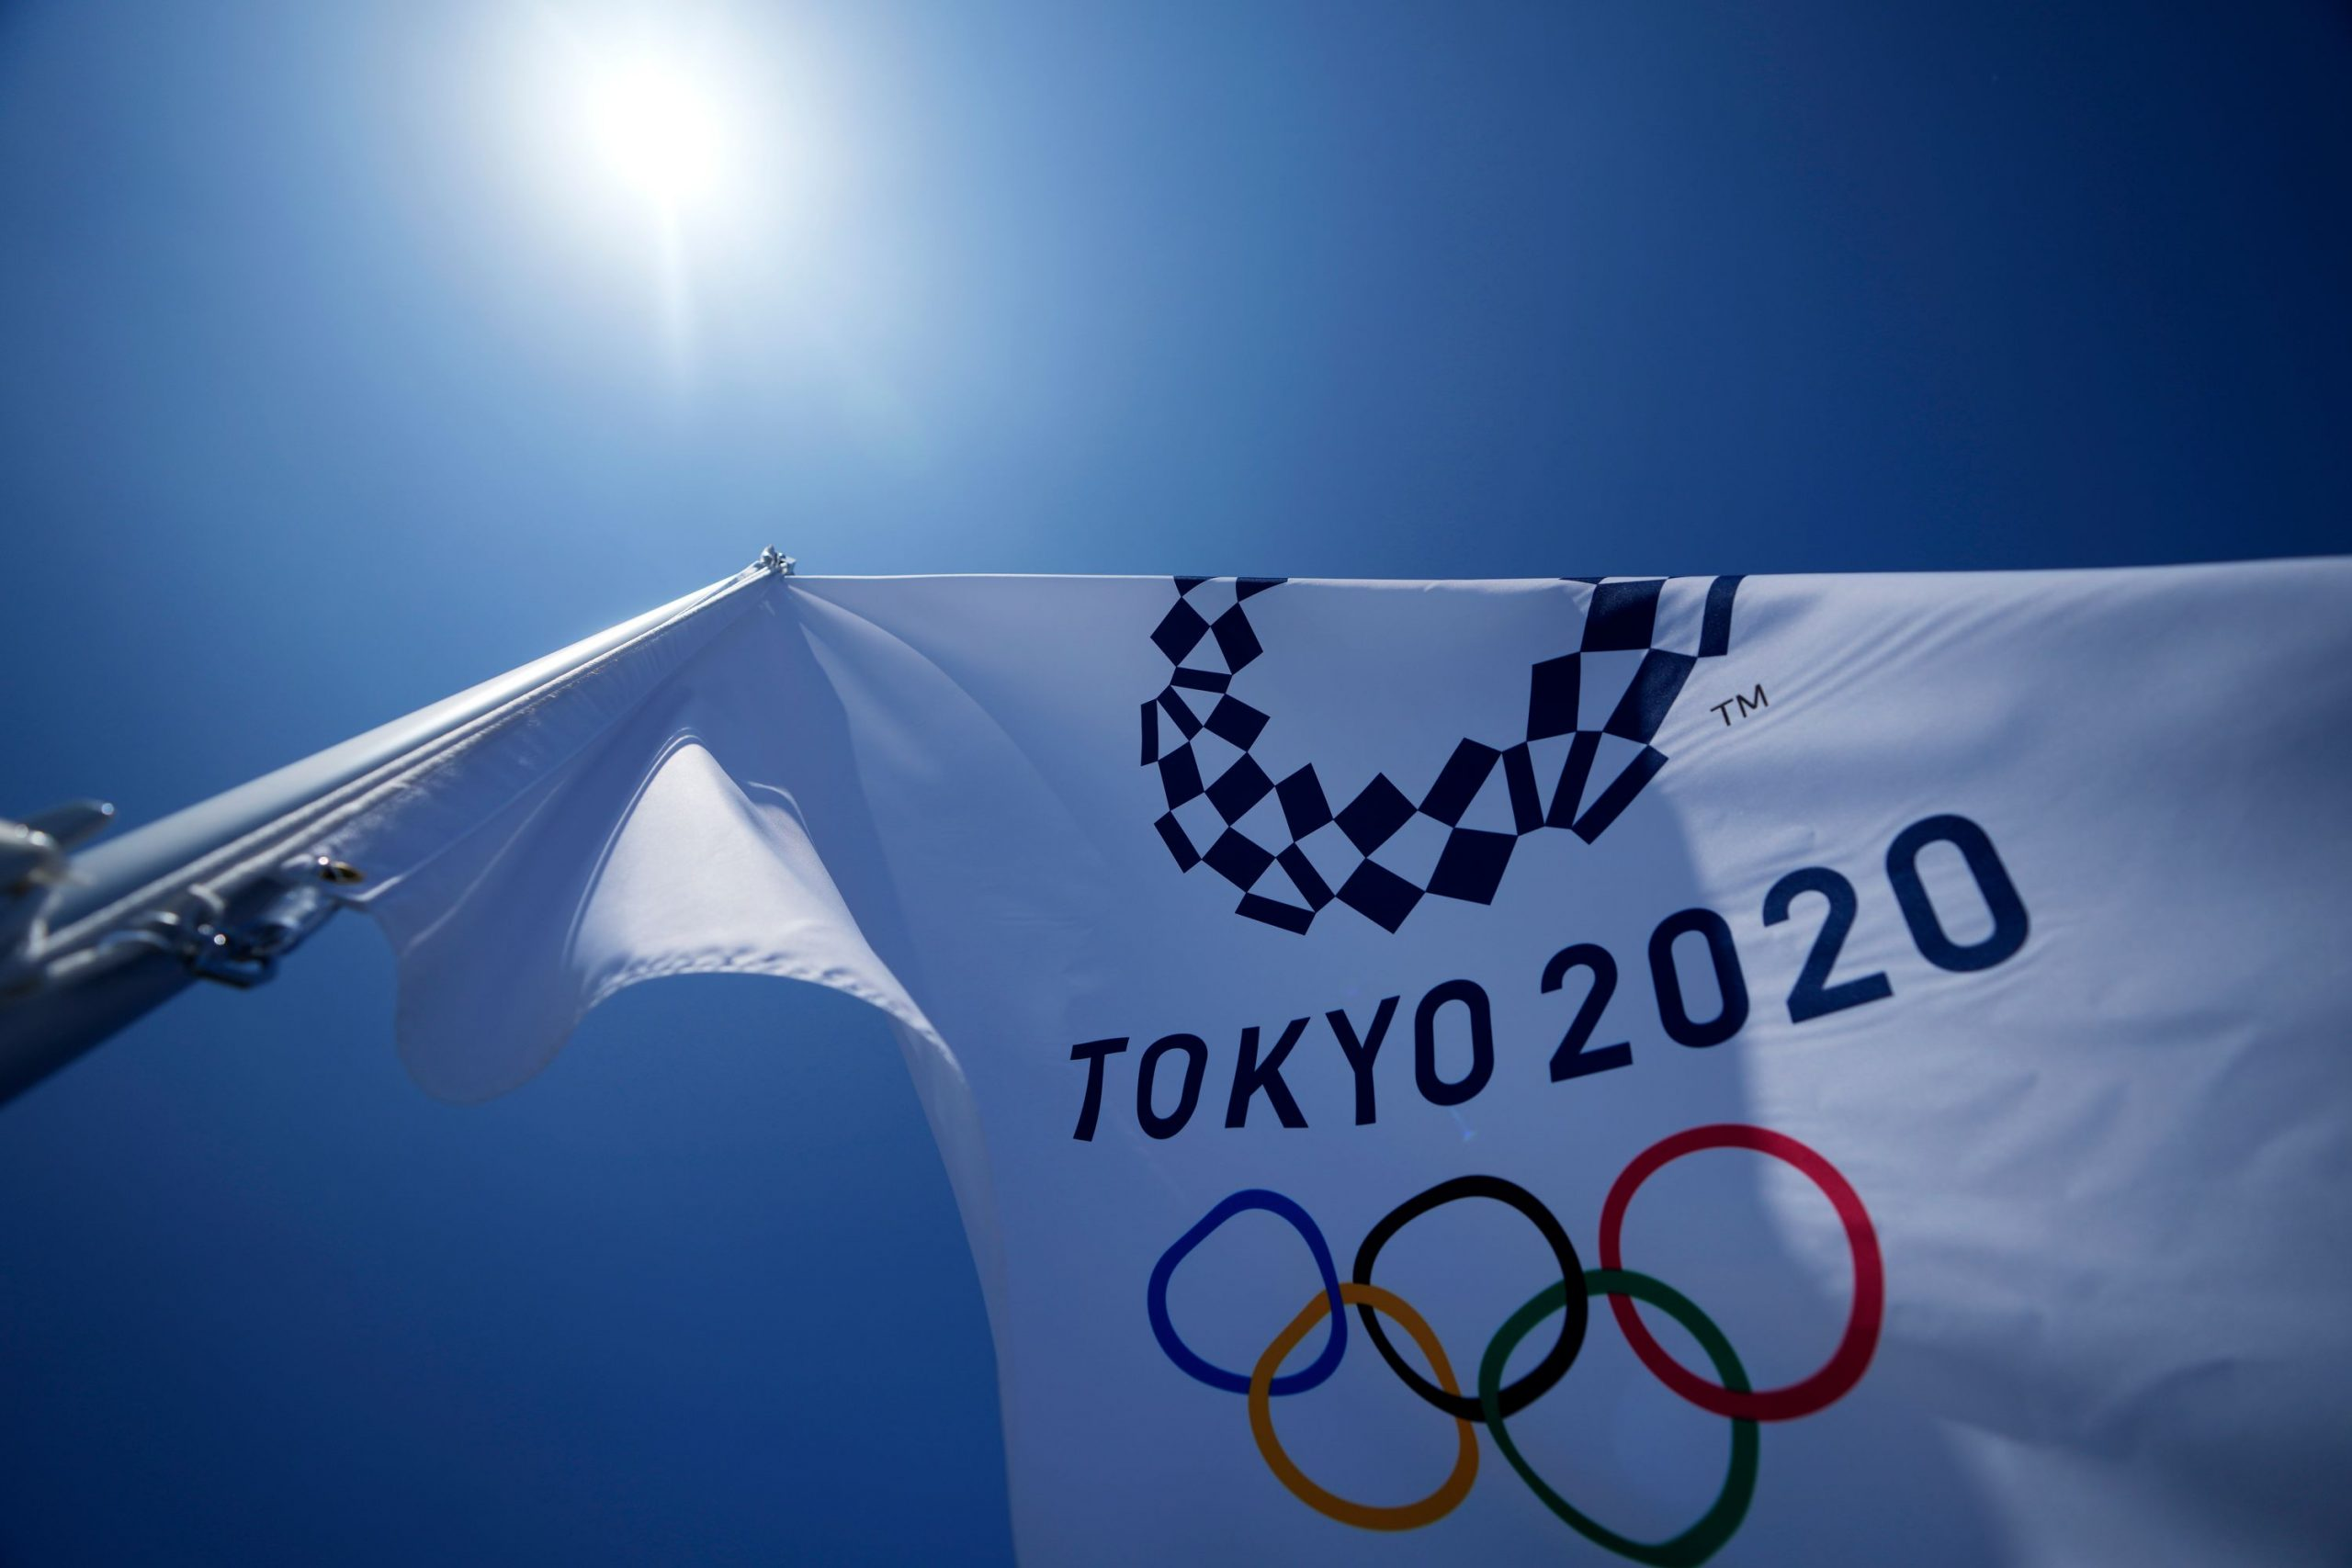 Opinion | Japan's Leaders Worry the Olympics Could Hurt Their Global Brand. They're Wrong.